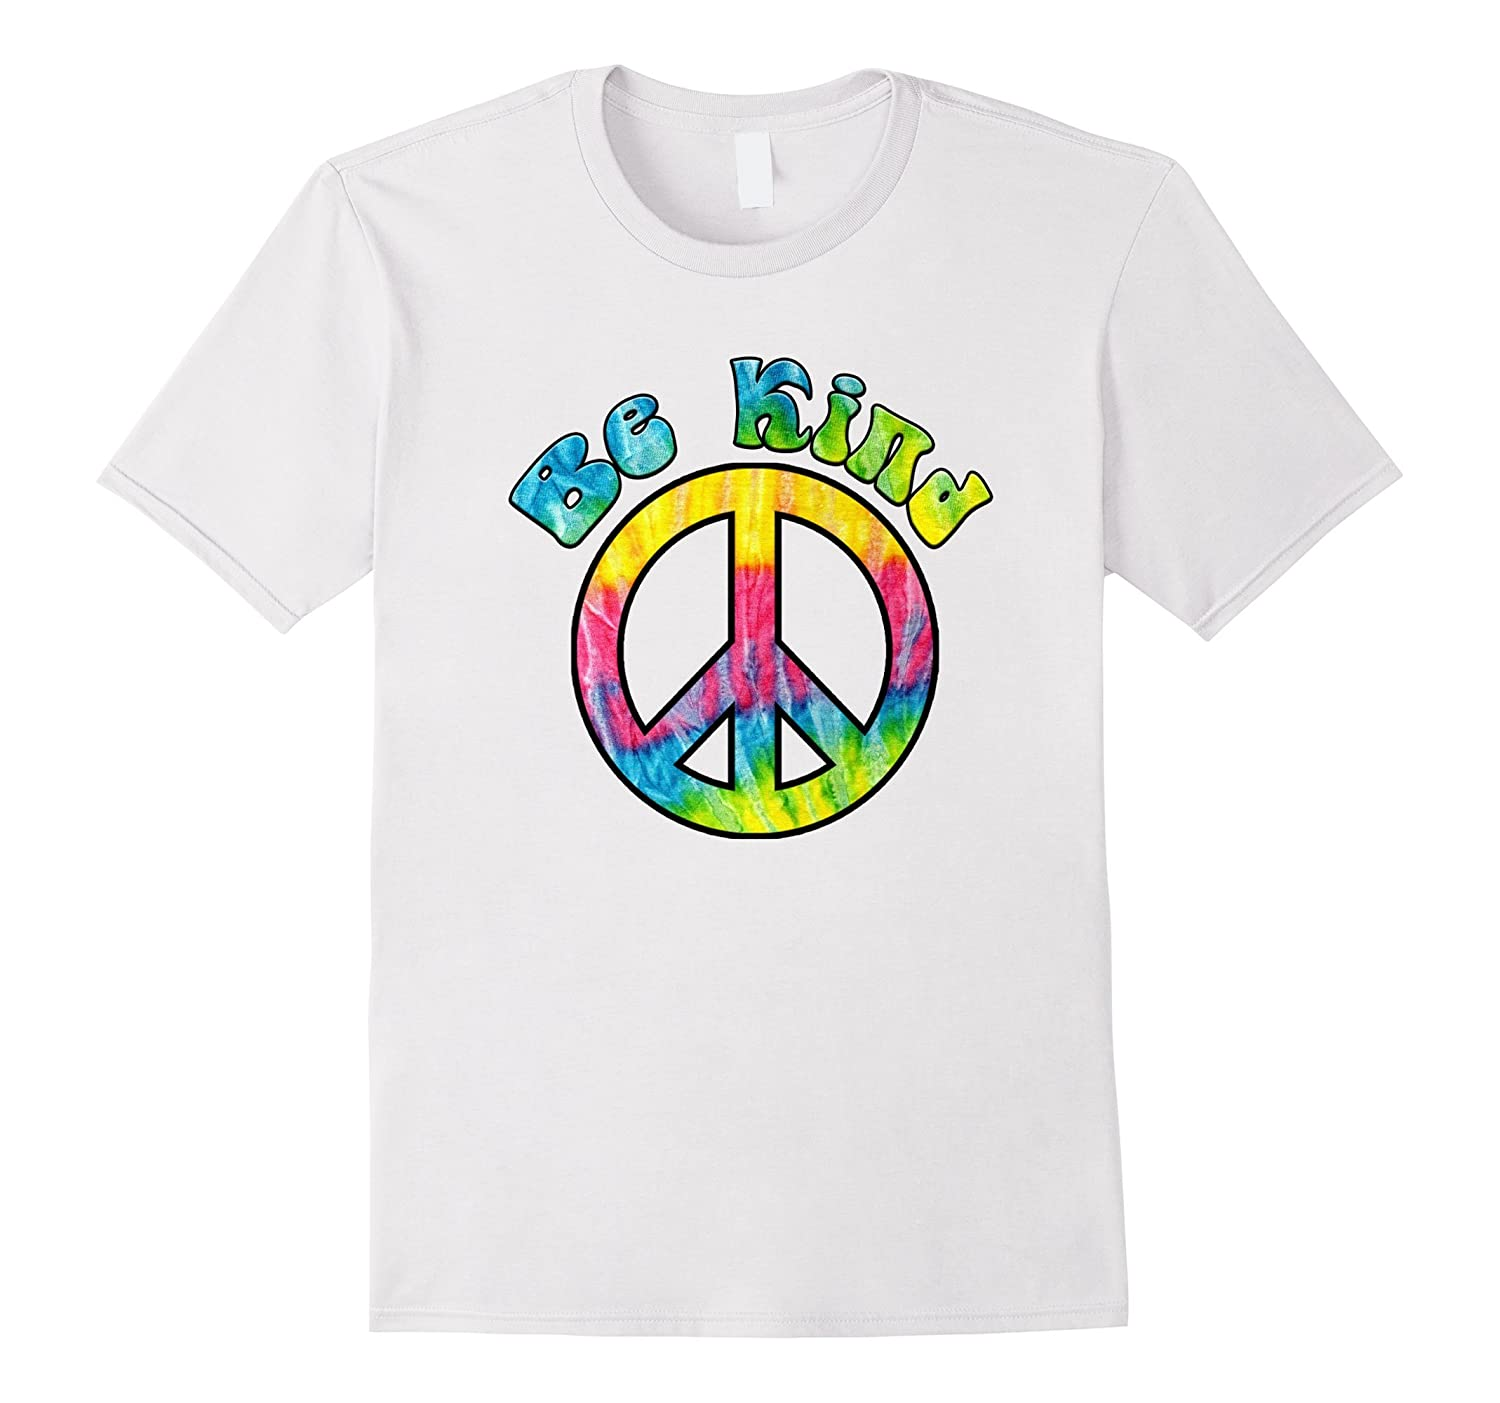 8ed61c41e51e Psychedelic Tie Dye Hippie Be Kind Peace Sign Gift T-Shirt-ANZ ...